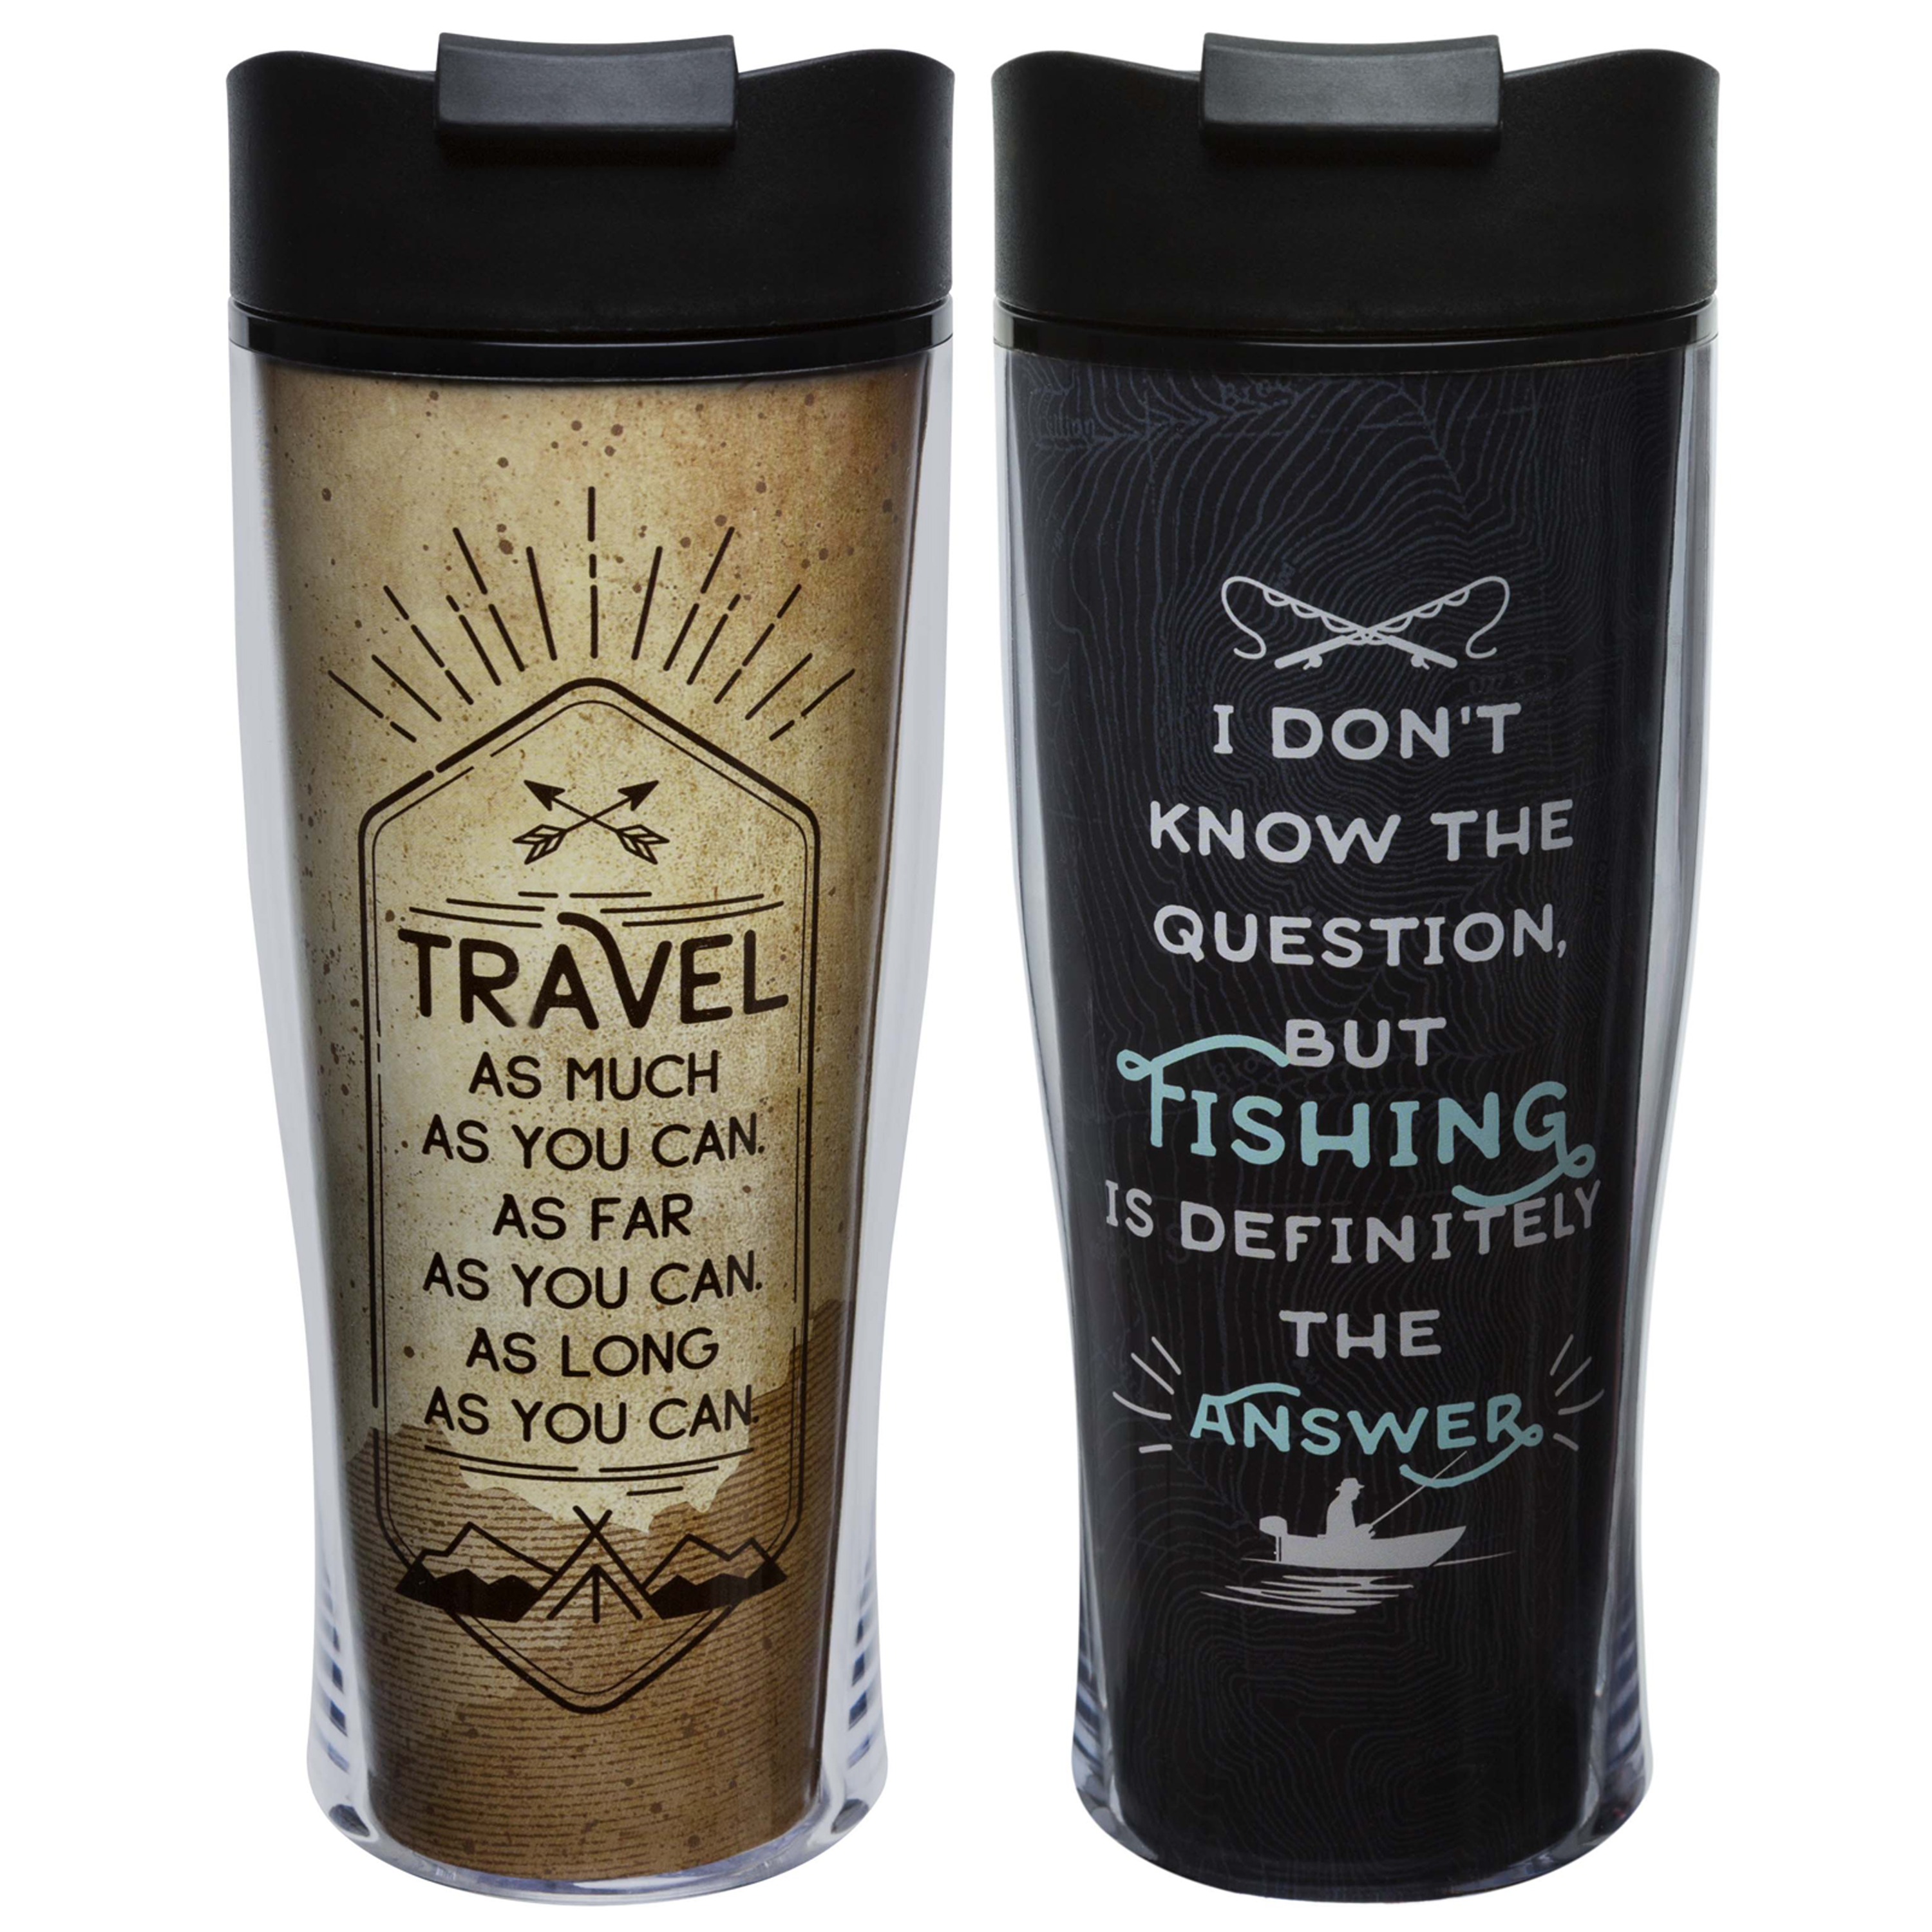 Adventurer 15 ounce Insulated Tumbler, Travel & Fishing, 2-piece set slideshow image 1